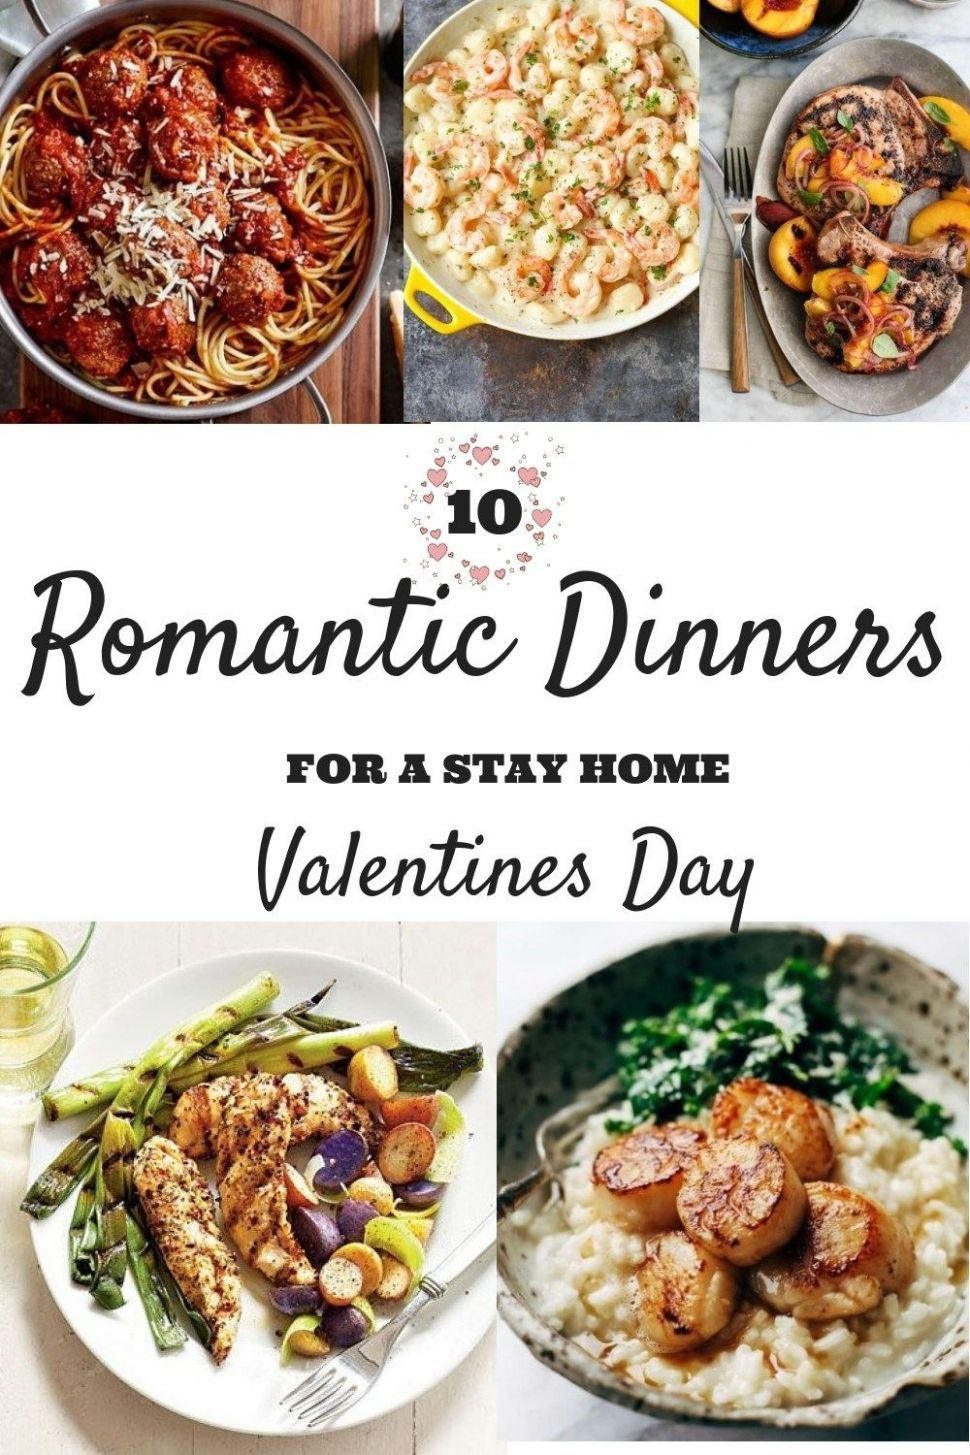 10 Romantic Dinners For A Stay Home Valentine's Day | Night dinner ...